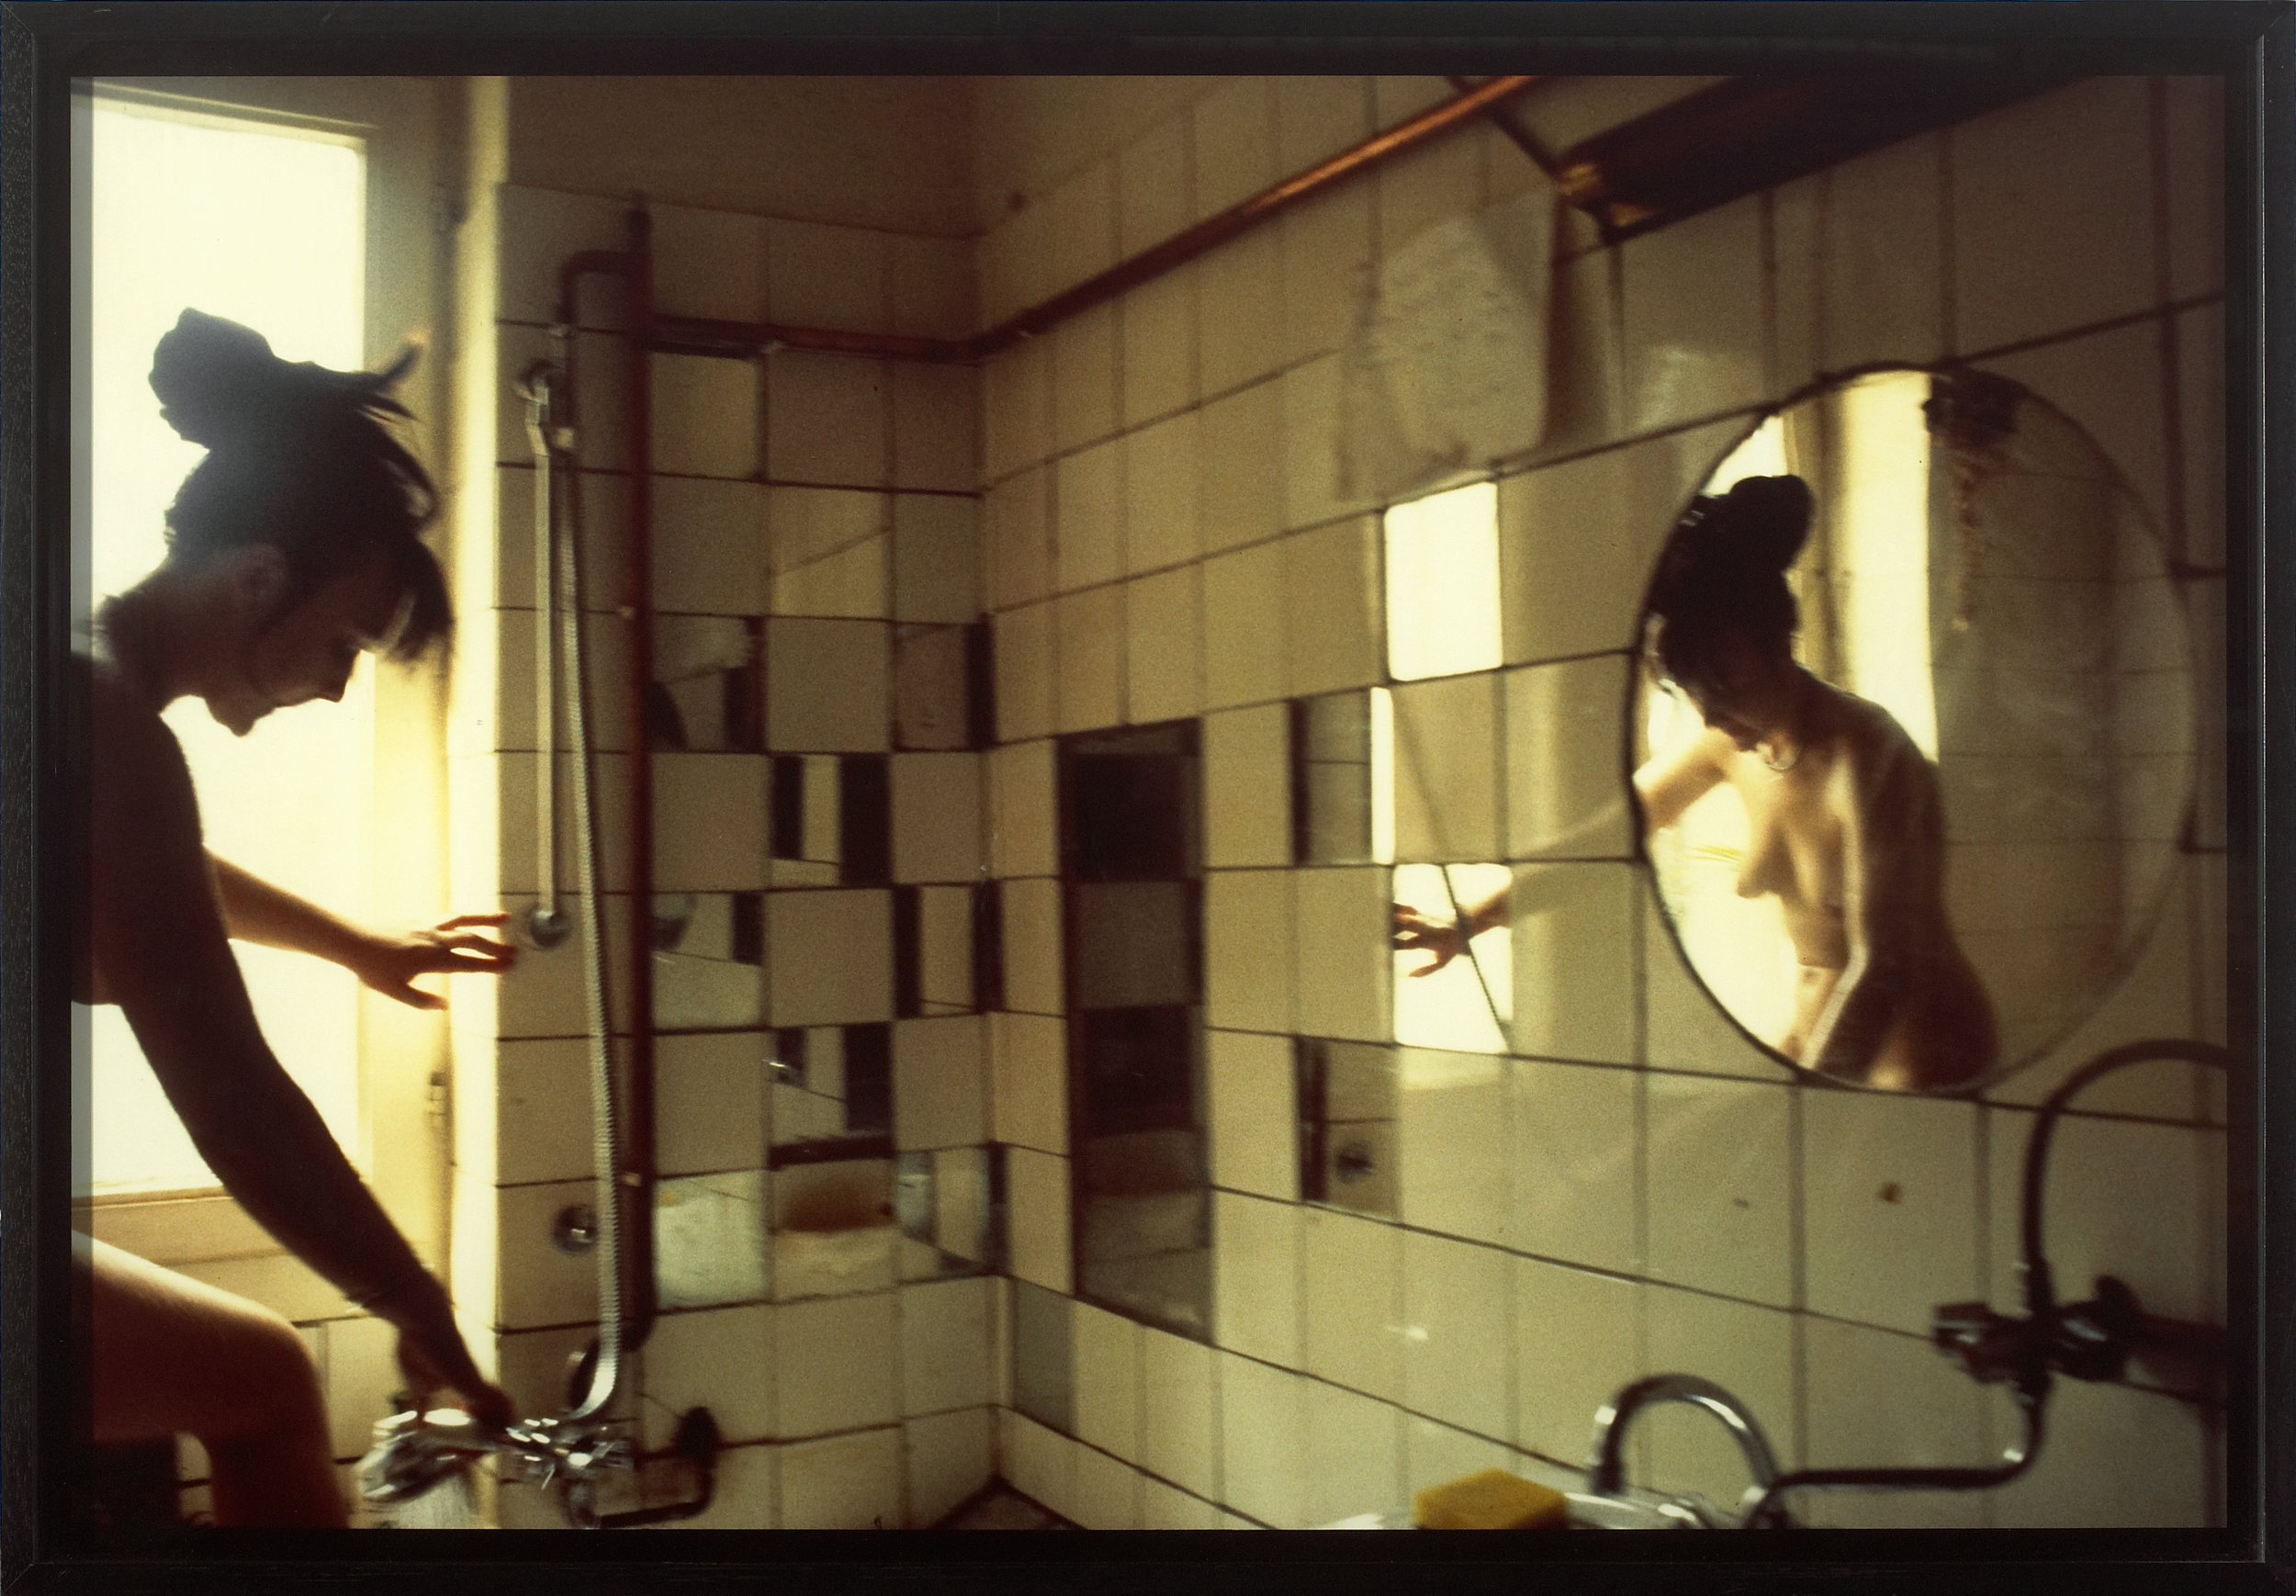 Käthe in the tub West Berlin 1984 Nan Goldin © Remi Villaggi